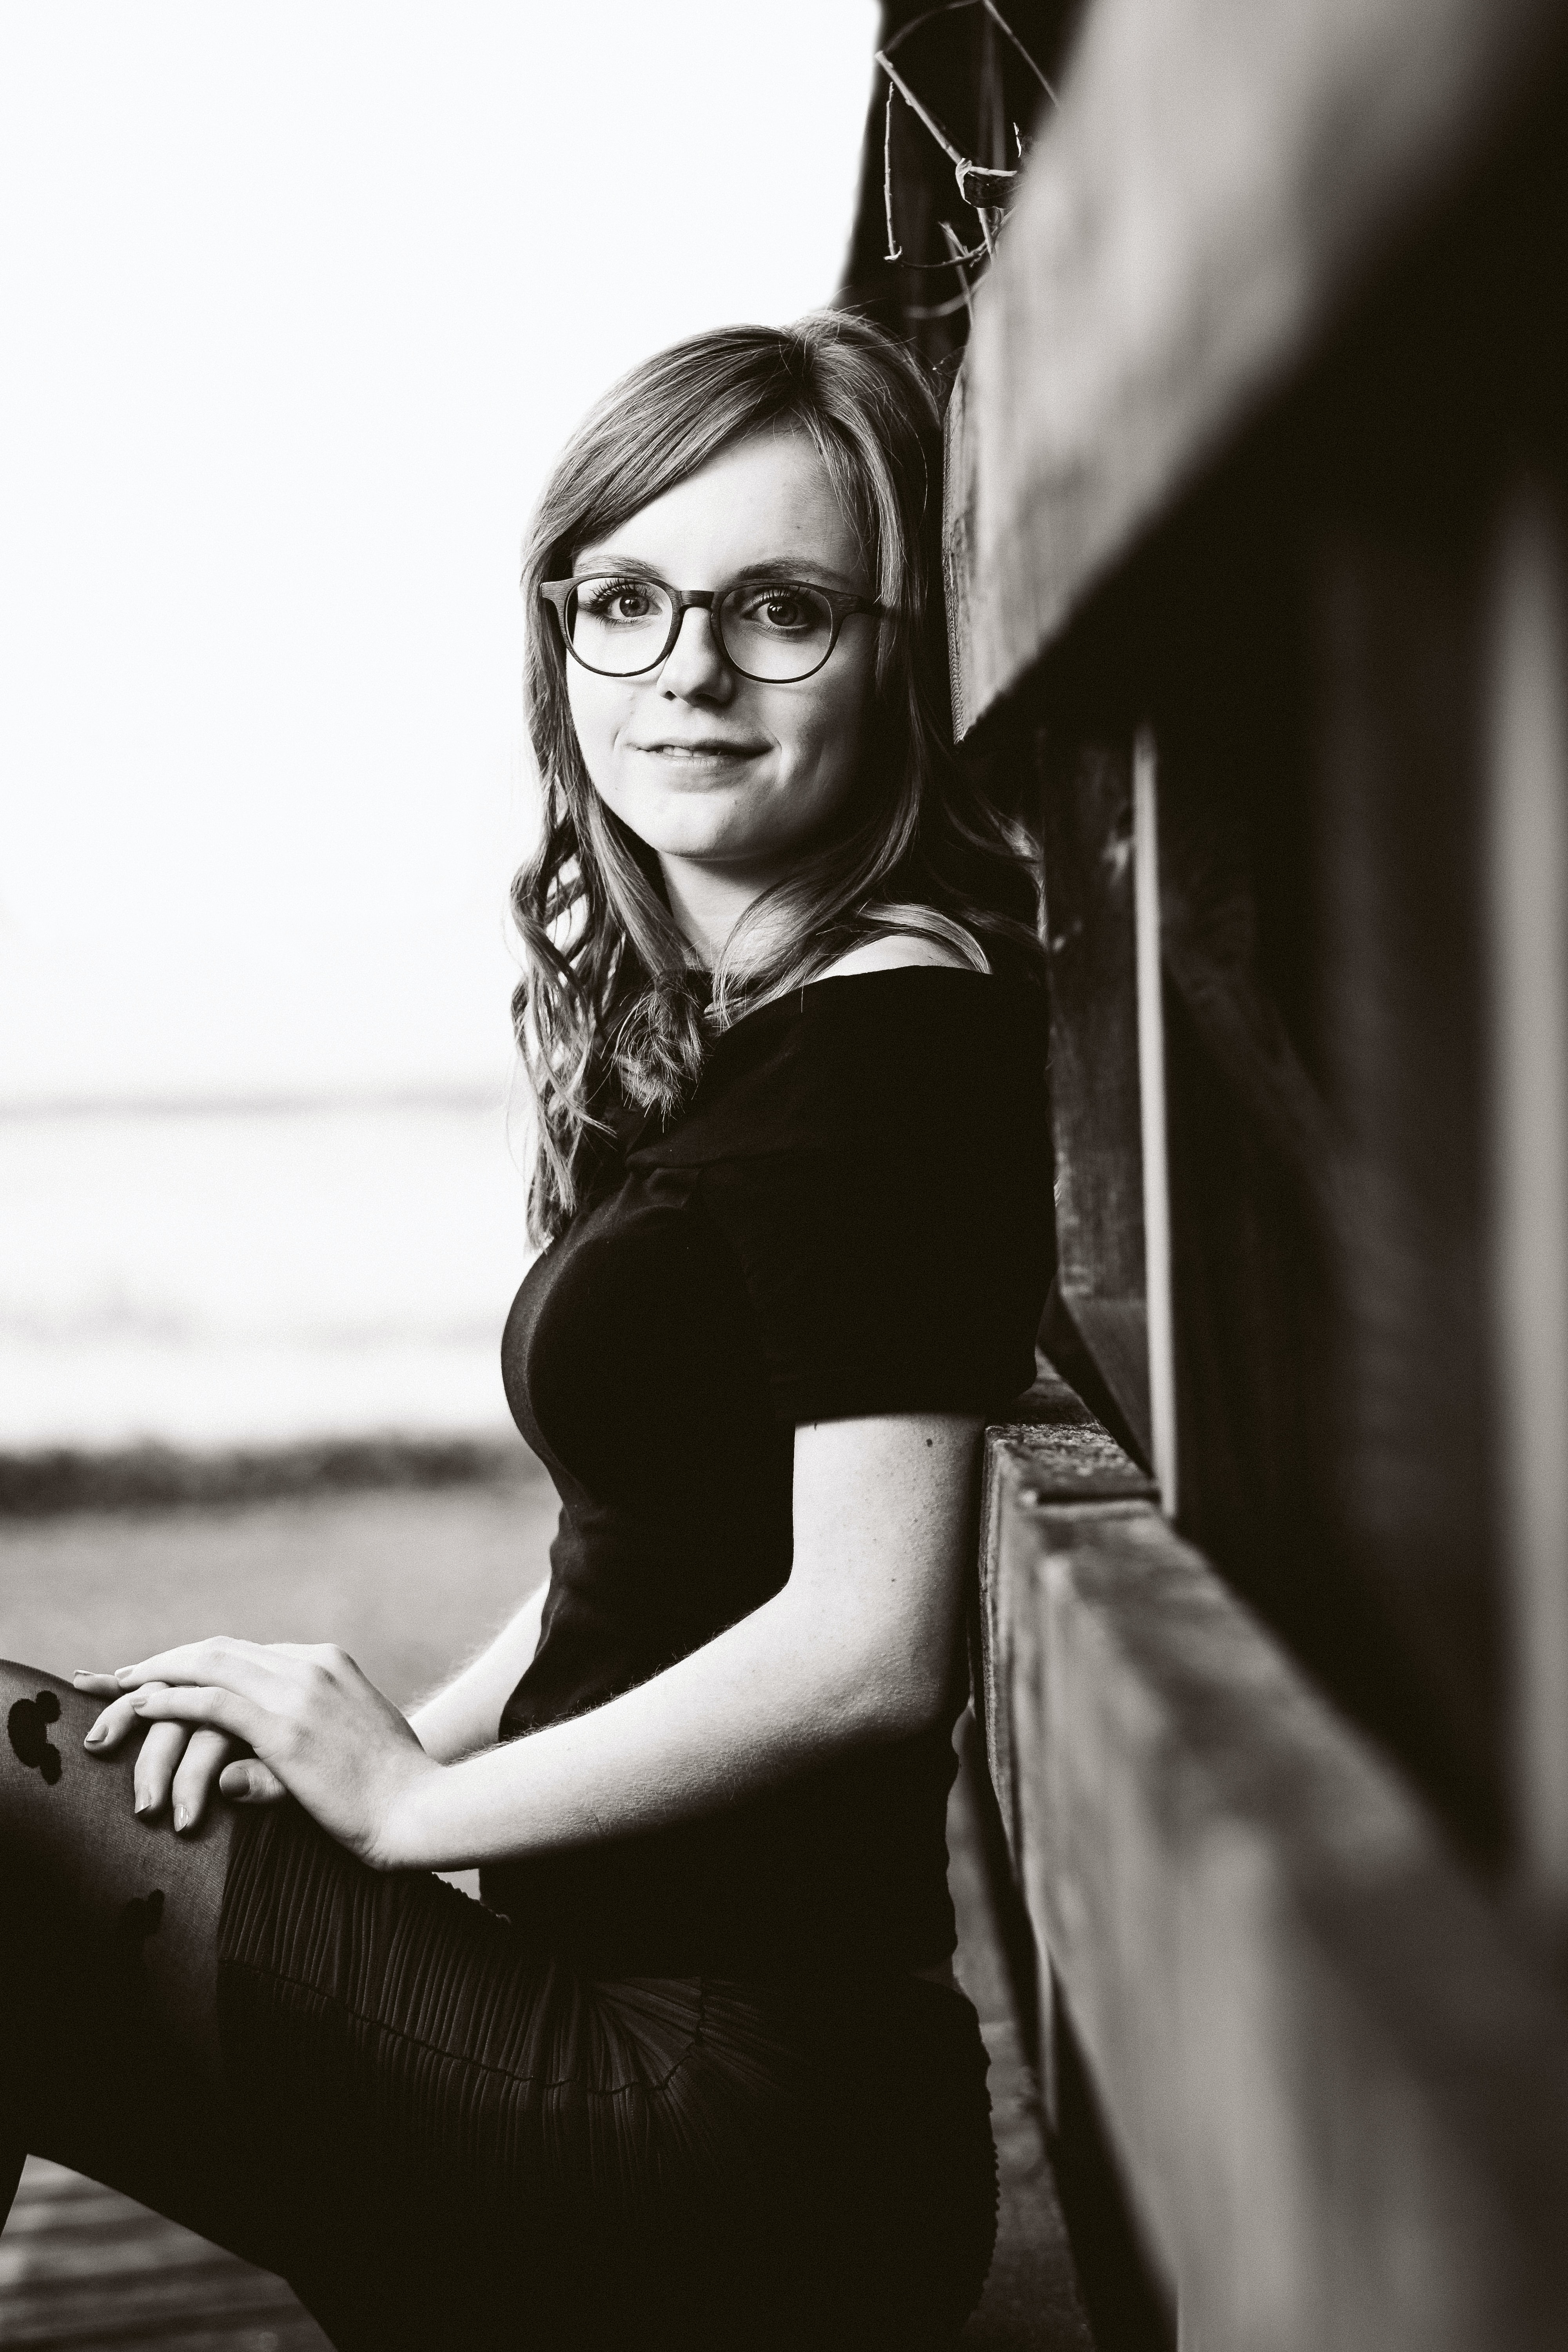 grayscale photo of woman lean on wall